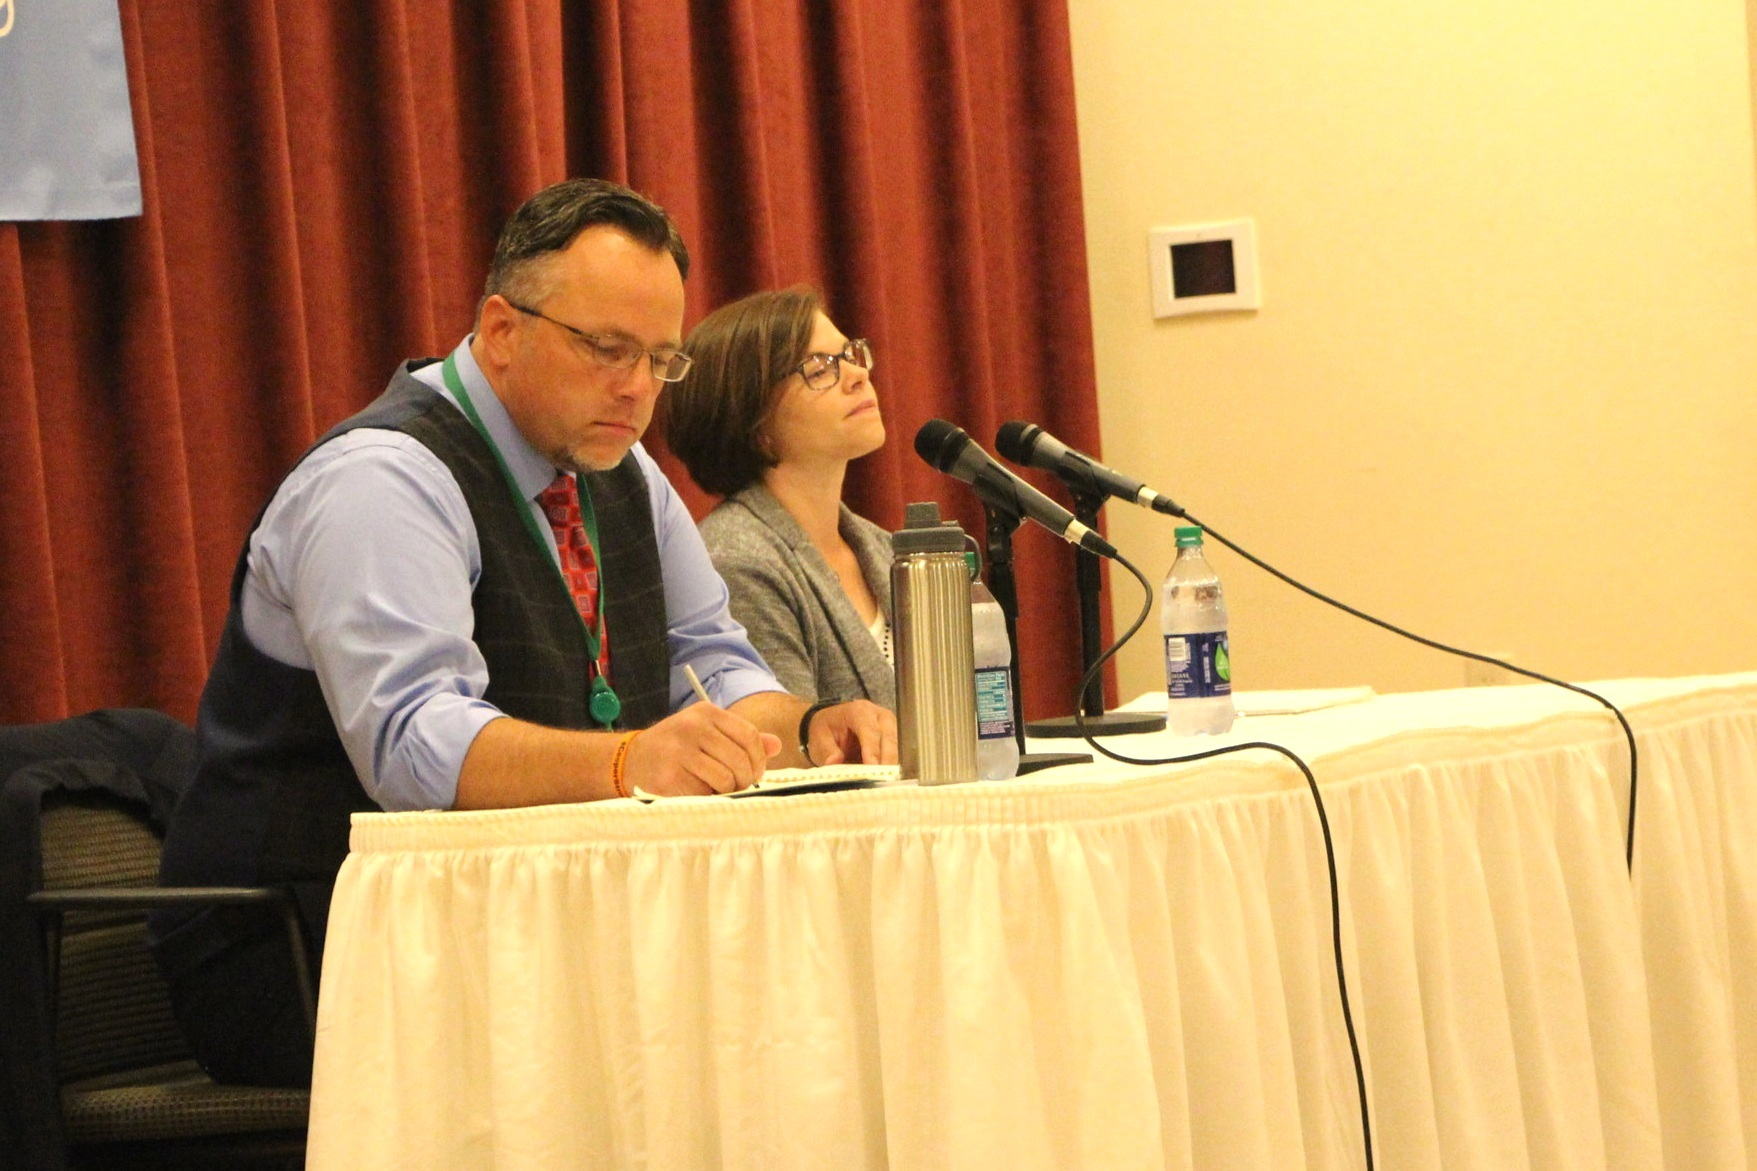 The two democratic mayoral debates on  Wednesday Sept. 4  and  Friday Sept. 6,  had many different topics of discussion ranging from town budgets to taxes, but a major concern with both candidates had to do with Quinnipiac students living in residential neighborhoods around Hamden.